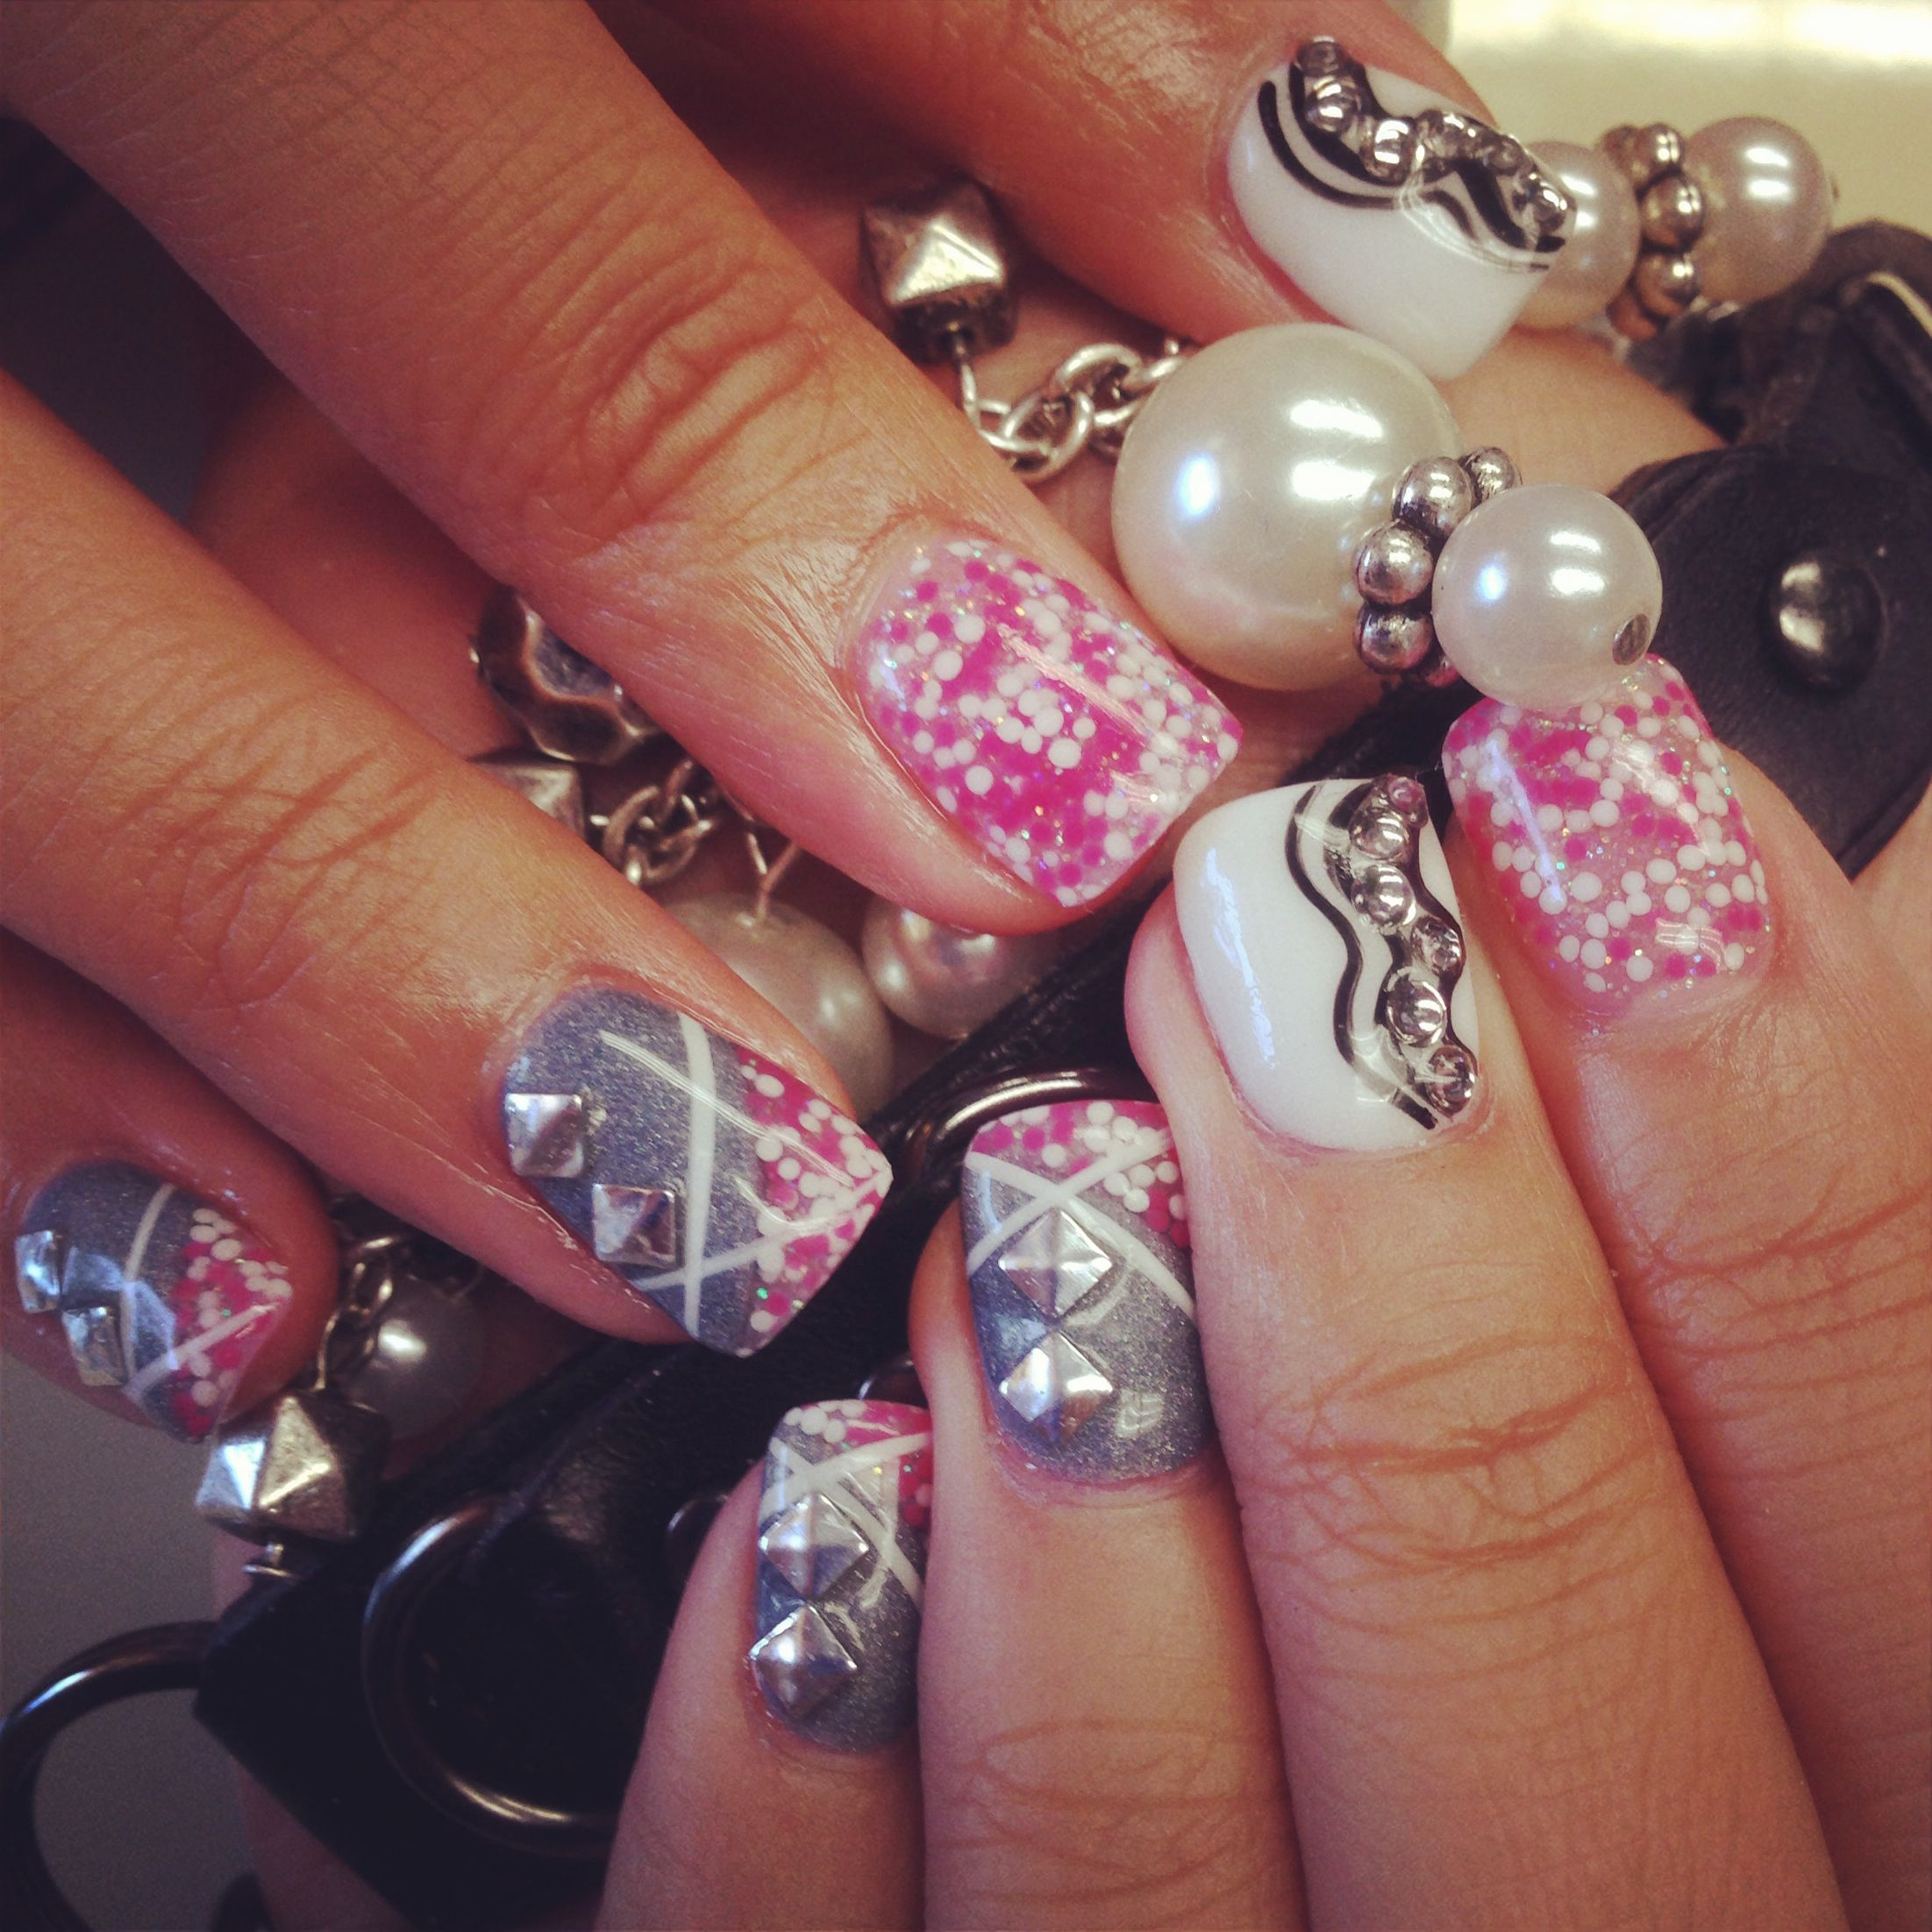 Retro Chic Nail Design With Caviar Nails By The Haute Spot